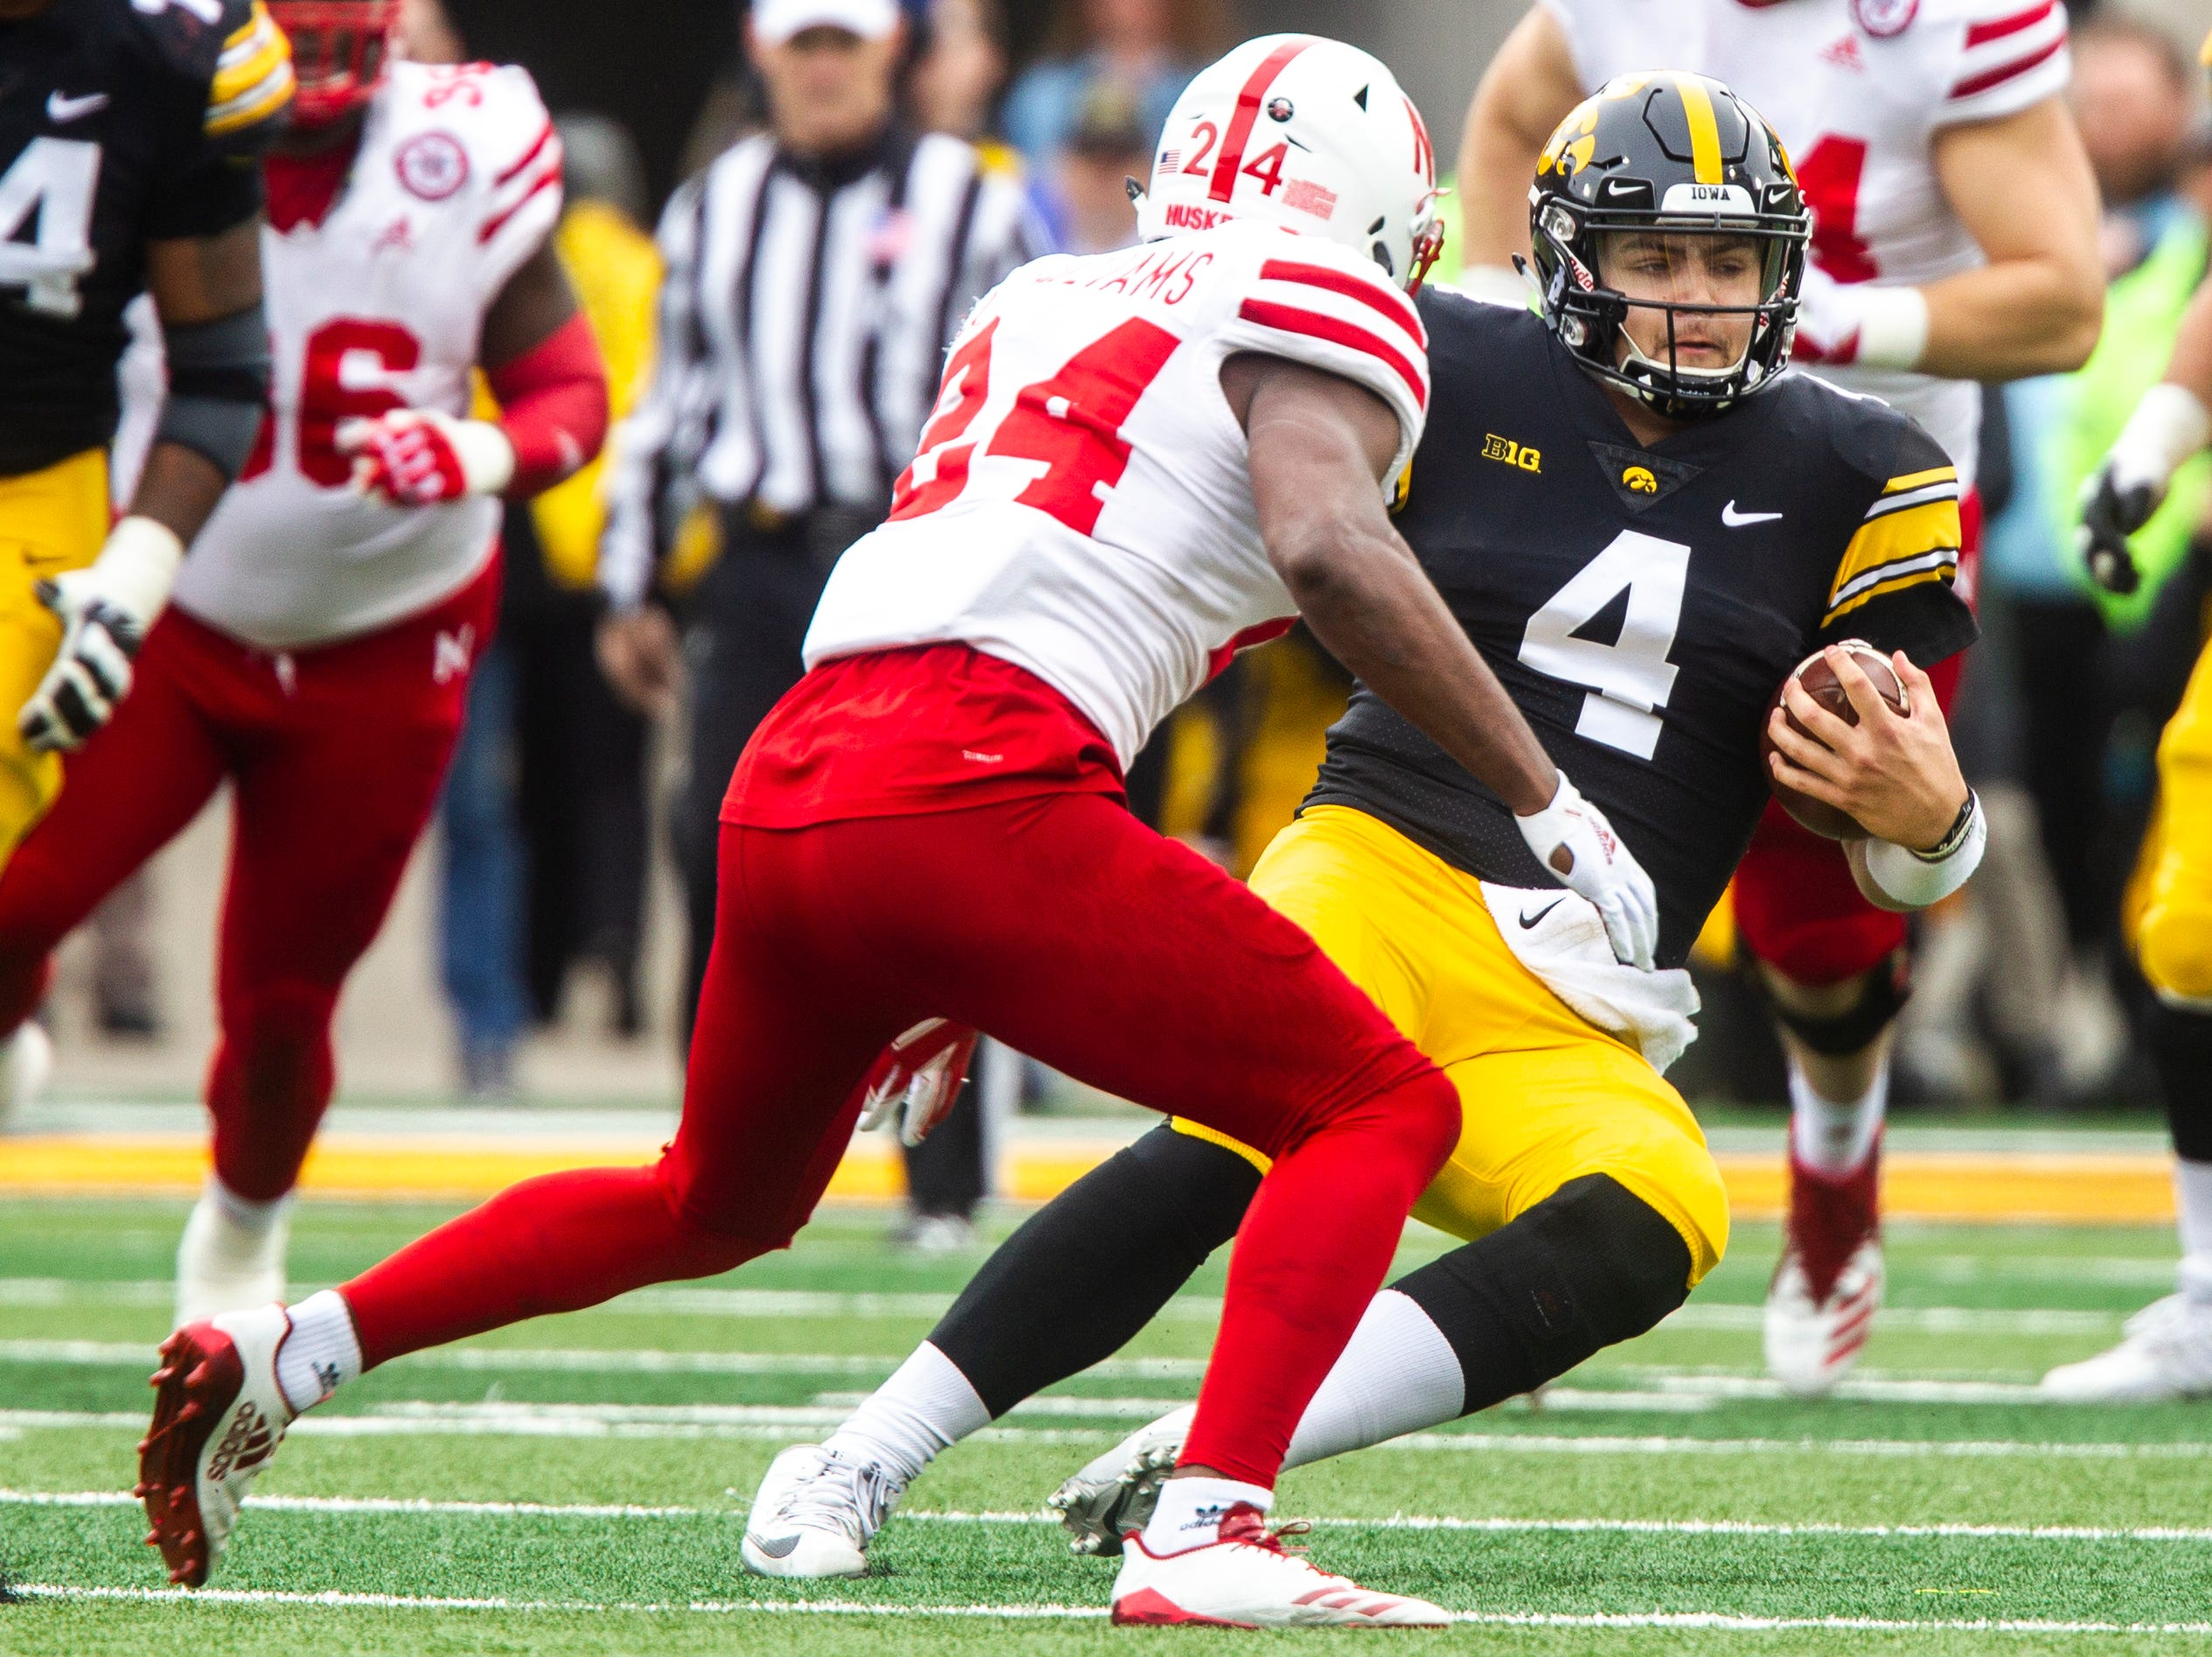 Iowa quarterback Nate Stanley (4) slides after rushing for a first down during a Big Ten Conference NCAA football game on Friday, Nov. 23, 2018, at Kinnick Stadium in Iowa City.